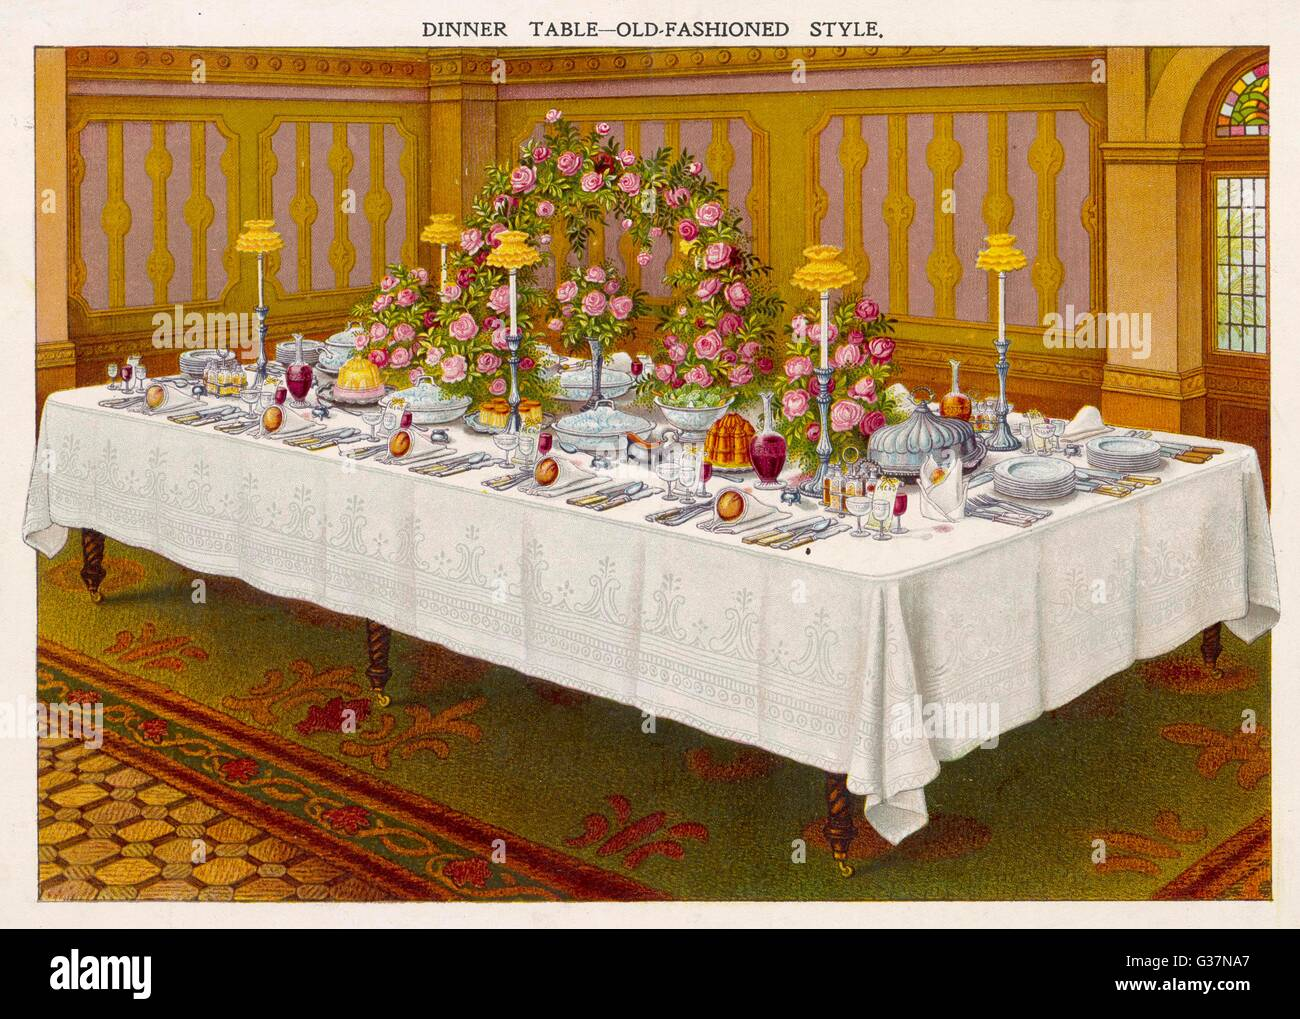 DINNER TABLE A LA FRANCAISE or laid in the 'Old-Fashioned'  style        Date: circa 1890 - Stock Image